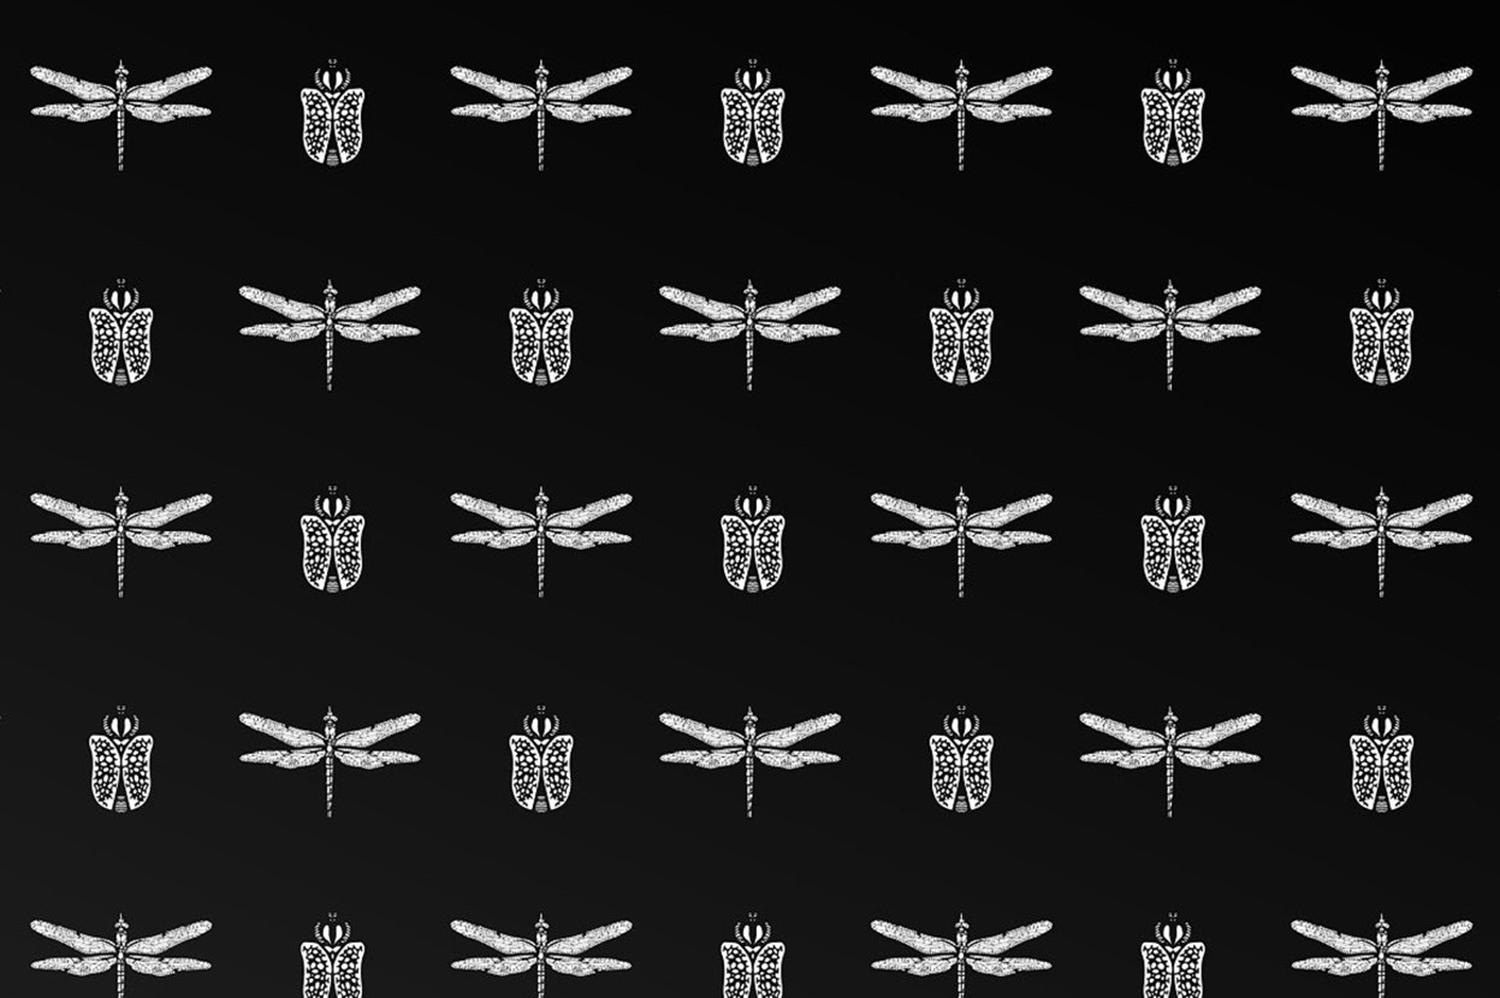 patterned insect background, tattoo, designbundles.net